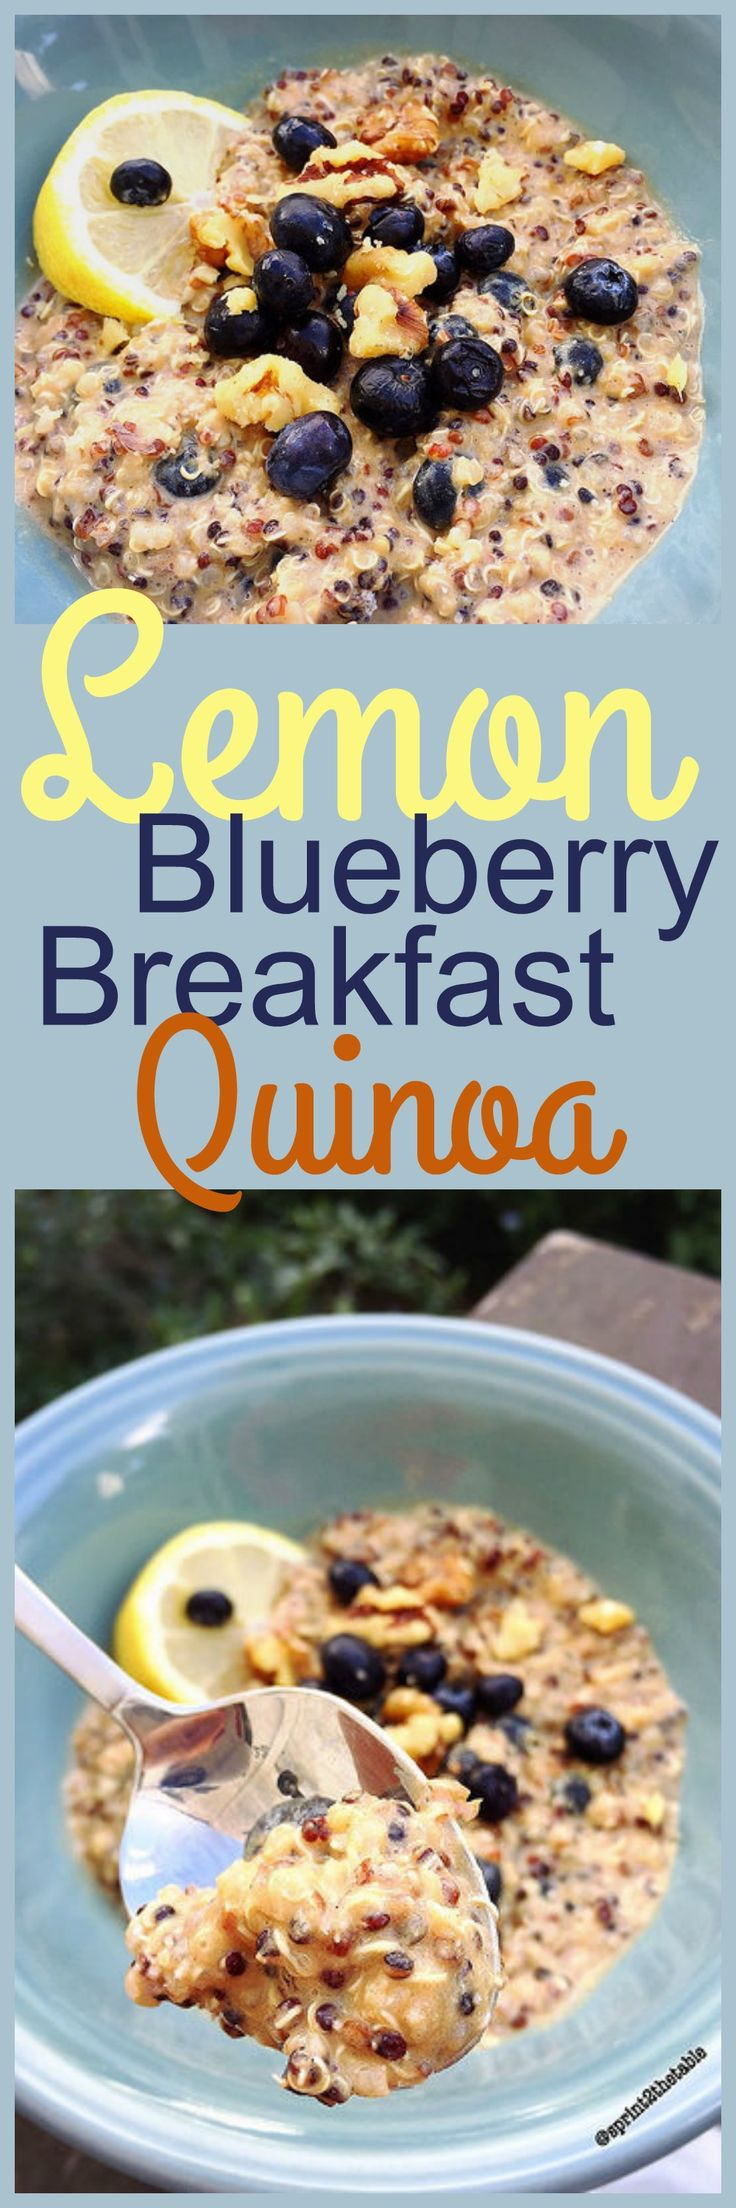 This breakfast quinoa is reminiscent of oatmeal, but I sweetened the deal by using vanilla protein powder, blueberries, and some Stevia.  --> Lemon Blueberry Breakfast Quinoa [Recipe] | Sprint 2 the Table